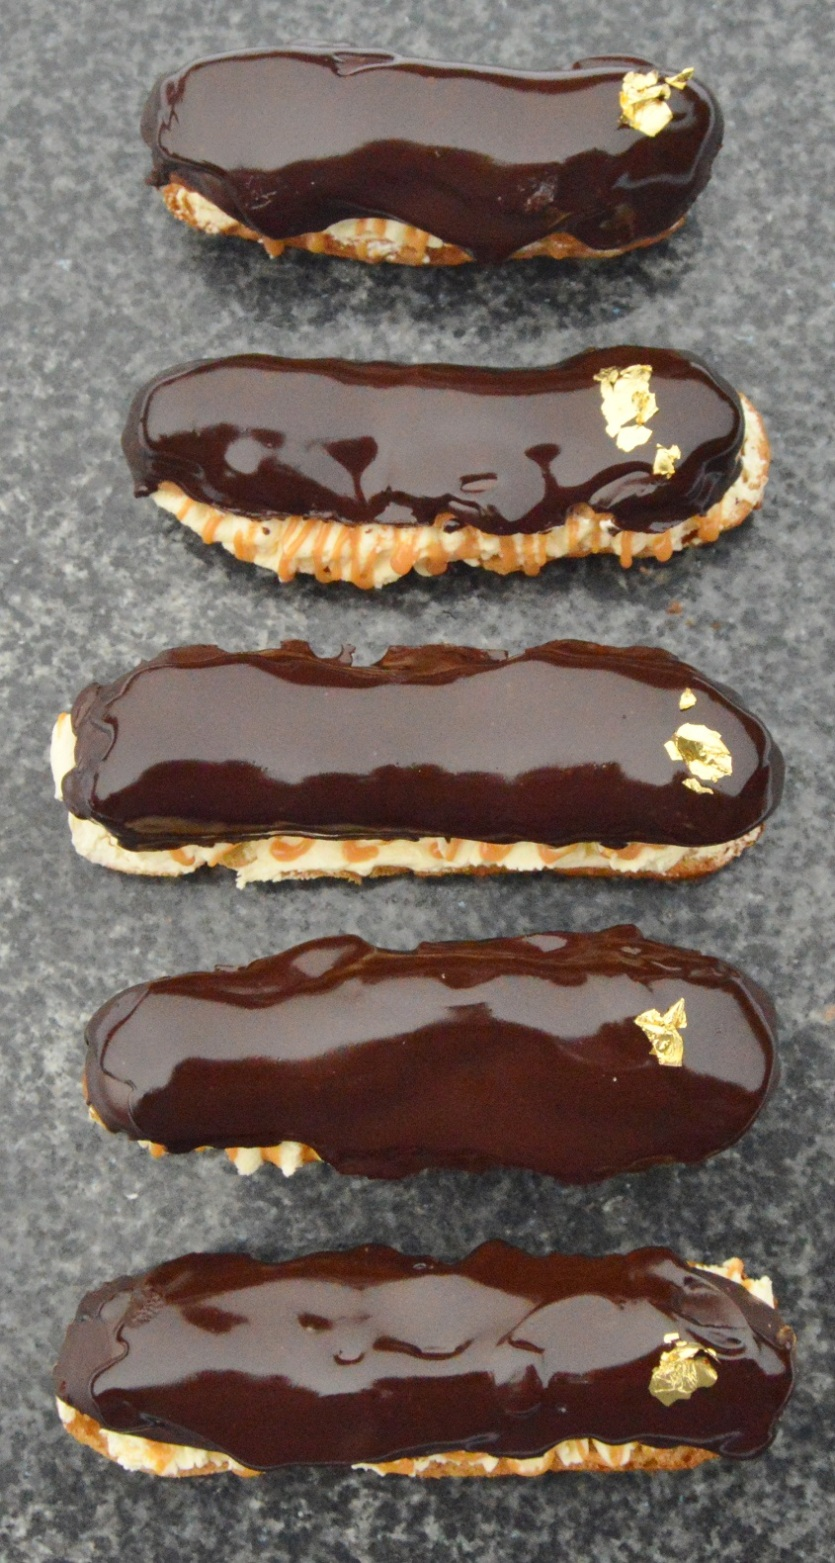 chocolate & salted caramel éclairs